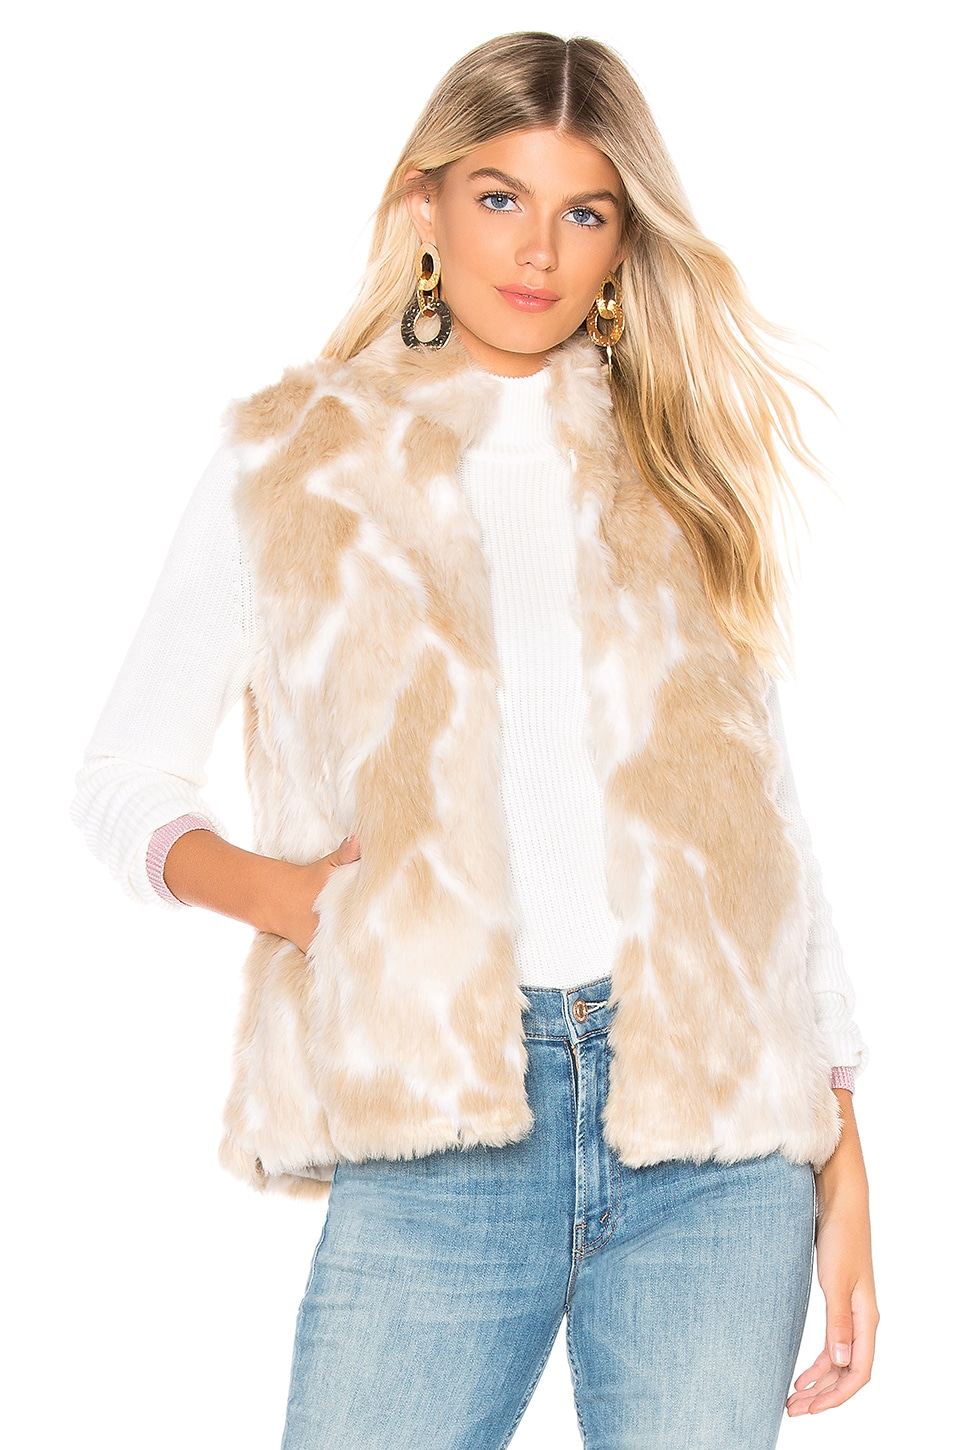 Bb Dakota BB DAKOTA JACK BY BB DAKOTA FAUX FUR WHAT VEST IN IVORY.